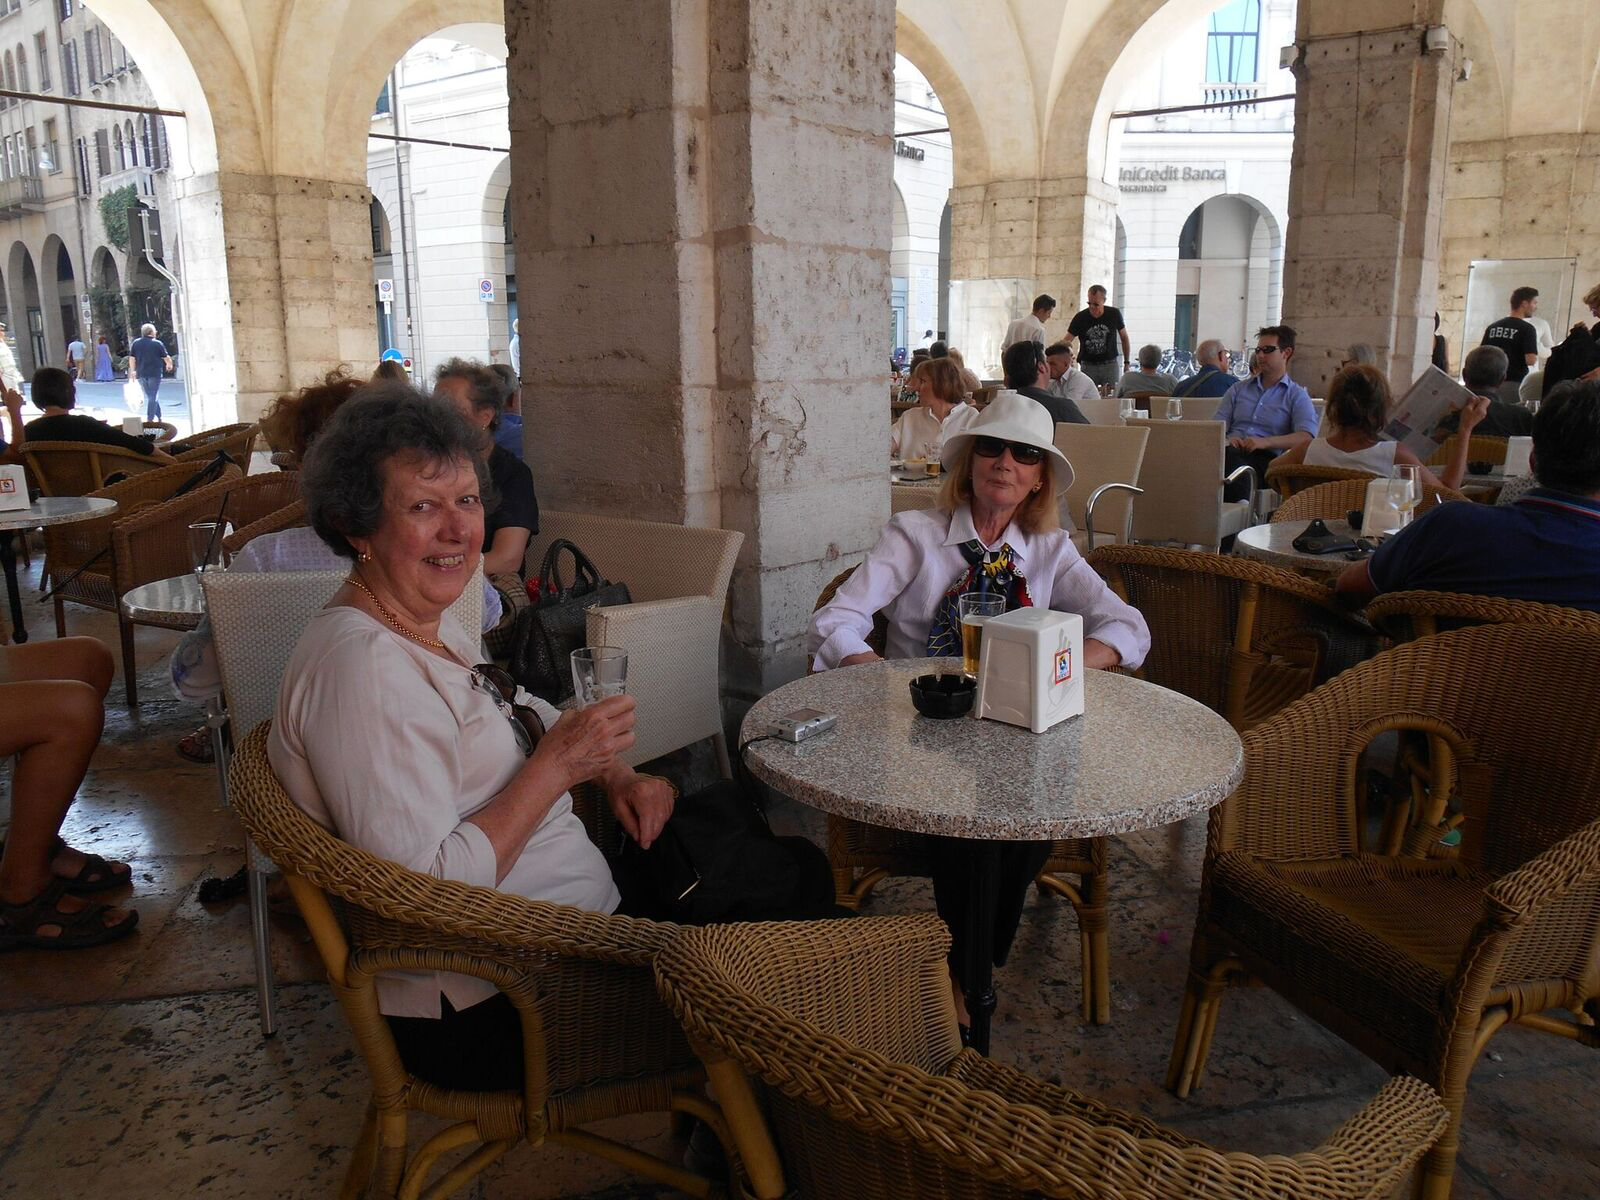 And of course time to relax as the locals do and rest and take in the ambience